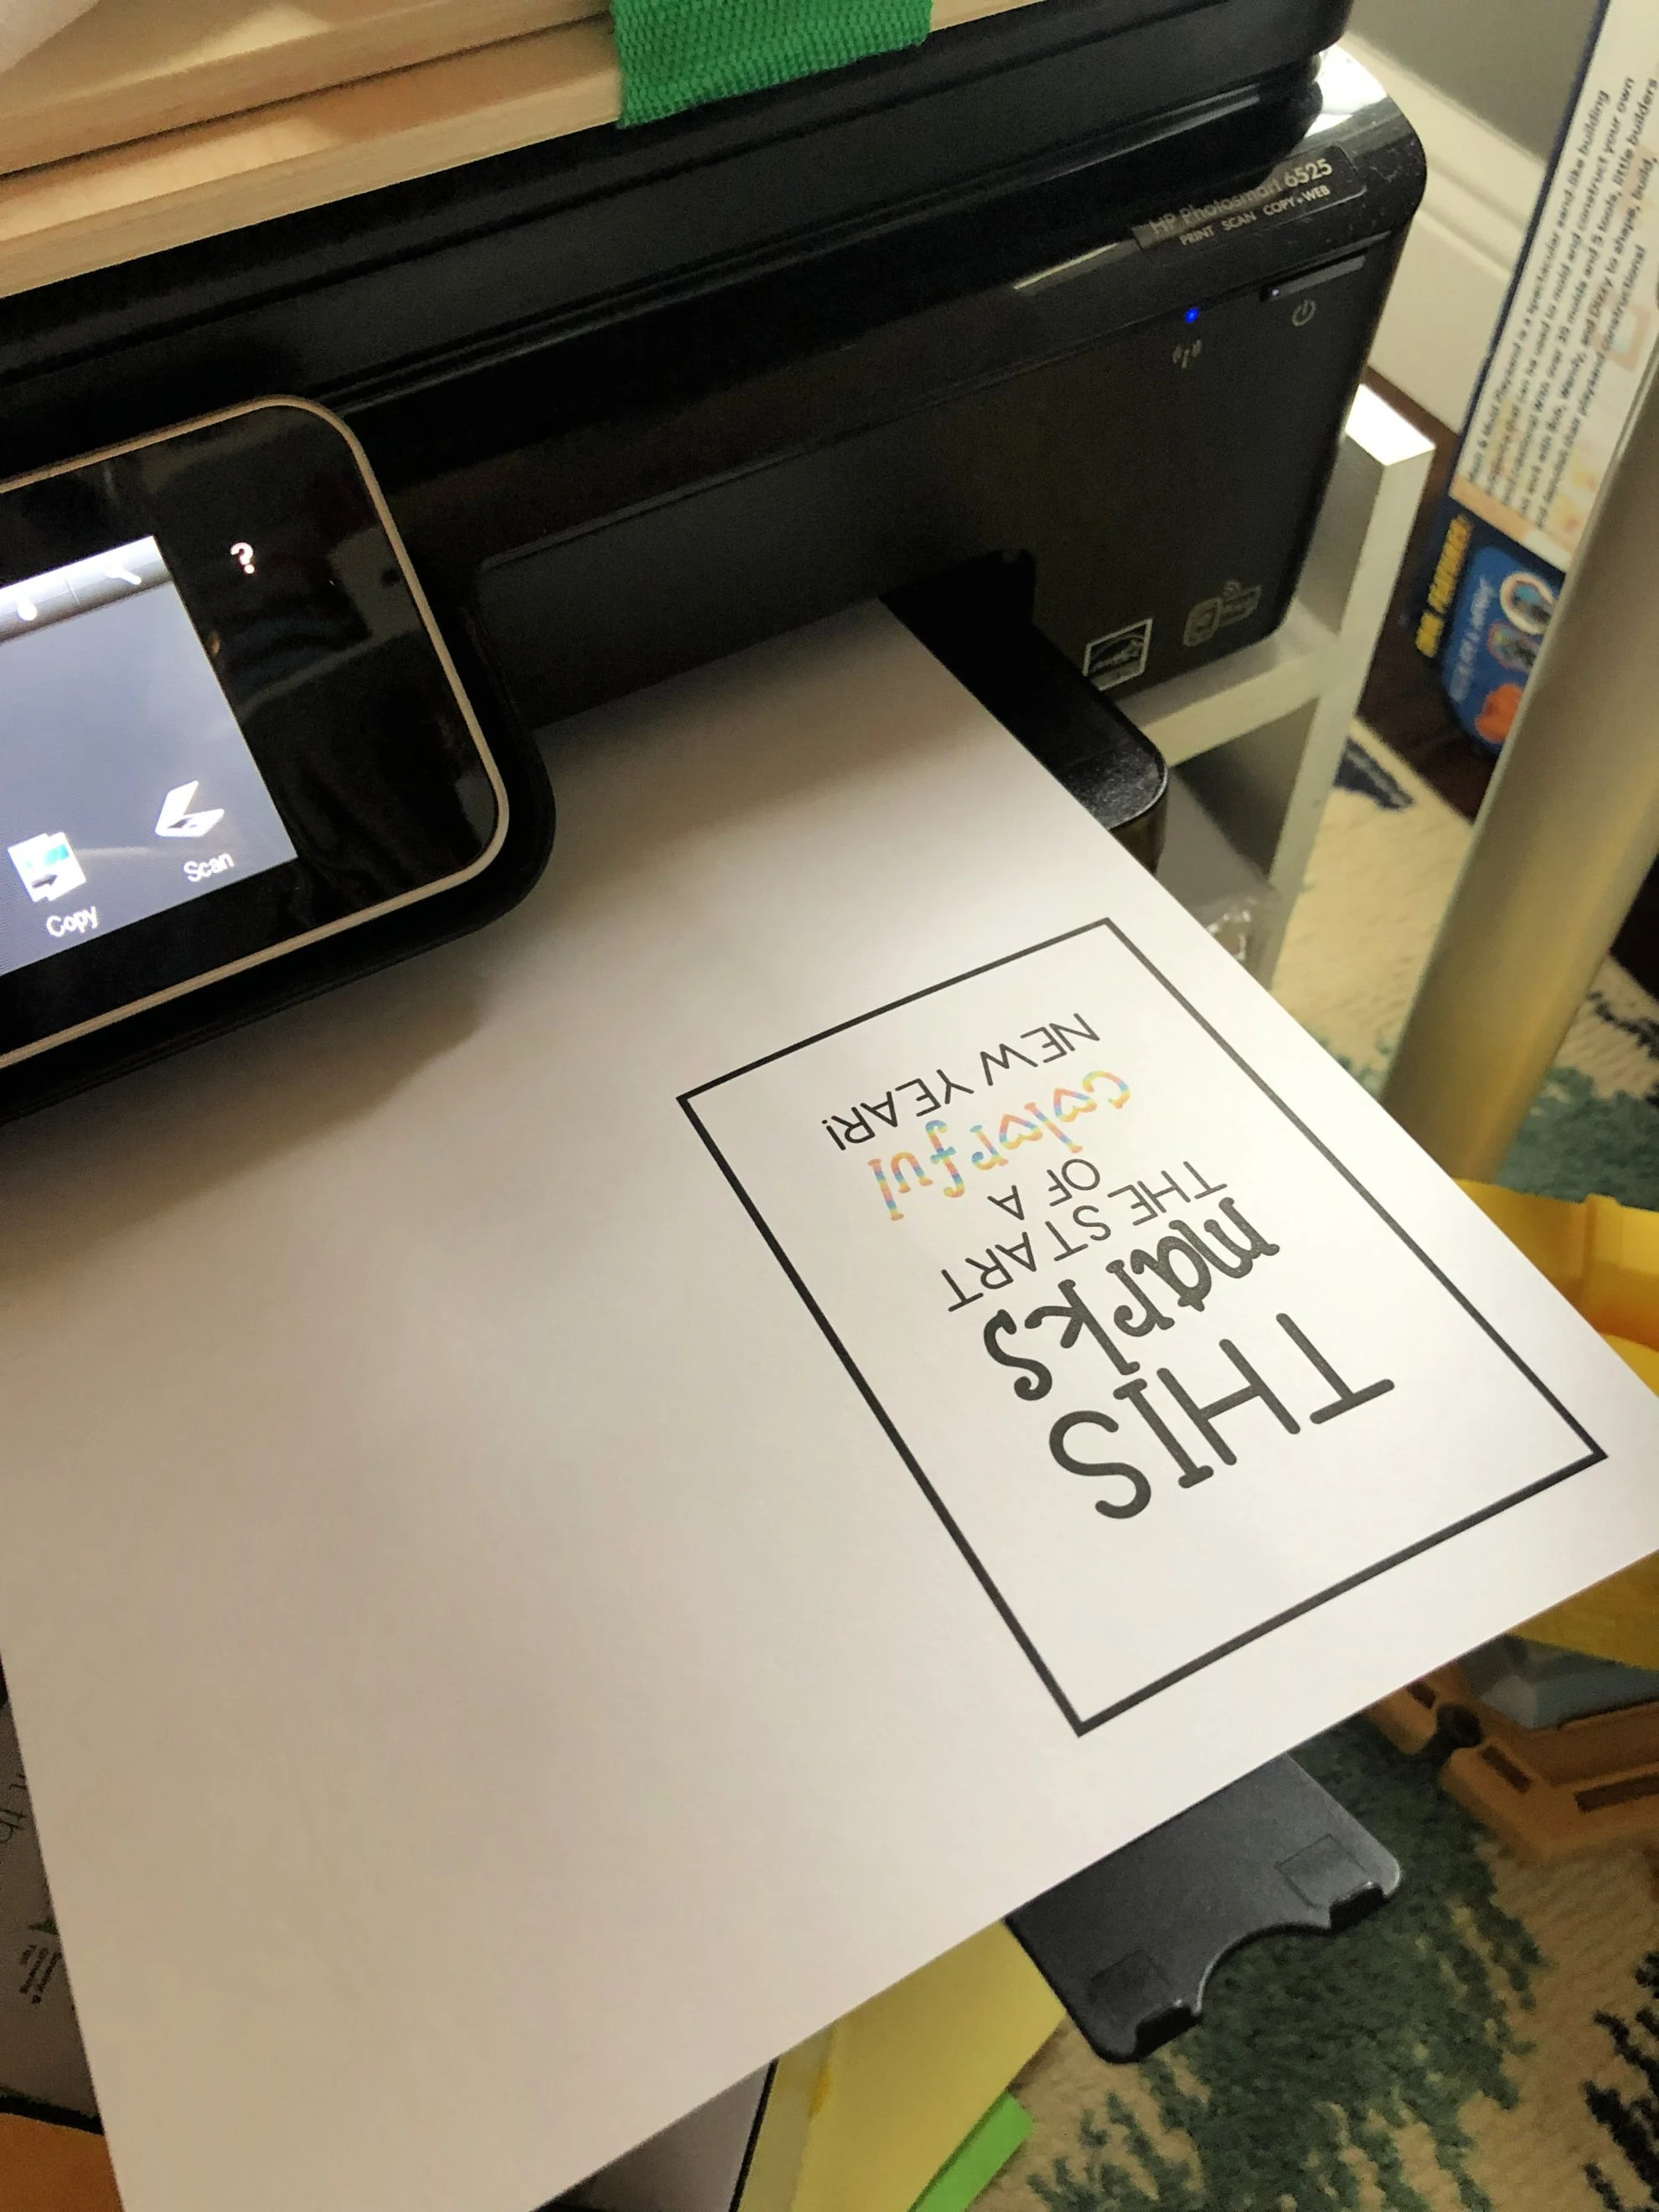 Black printer with a white paper printed with a rectangular box and print in it.